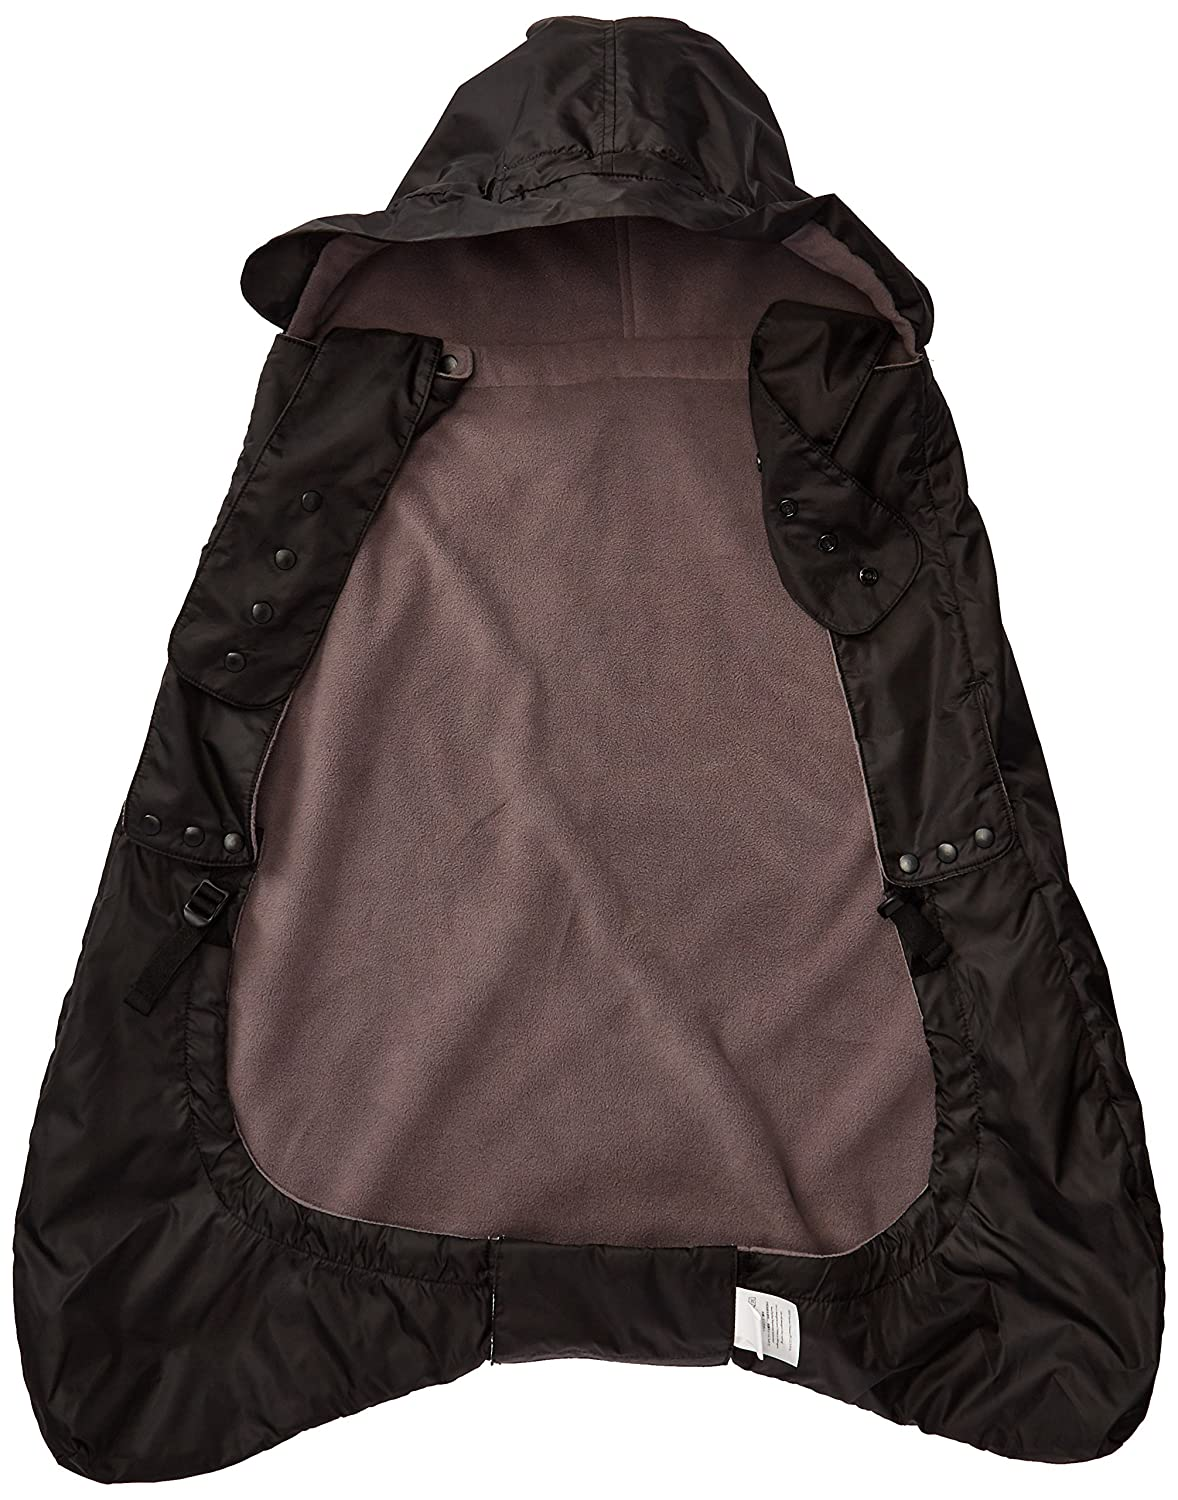 ERGObaby Winter Weather and Rain Cover for Baby Carrier, Isolated Rain Cover with Fleece Lining, Waterproof, black WCW2NL